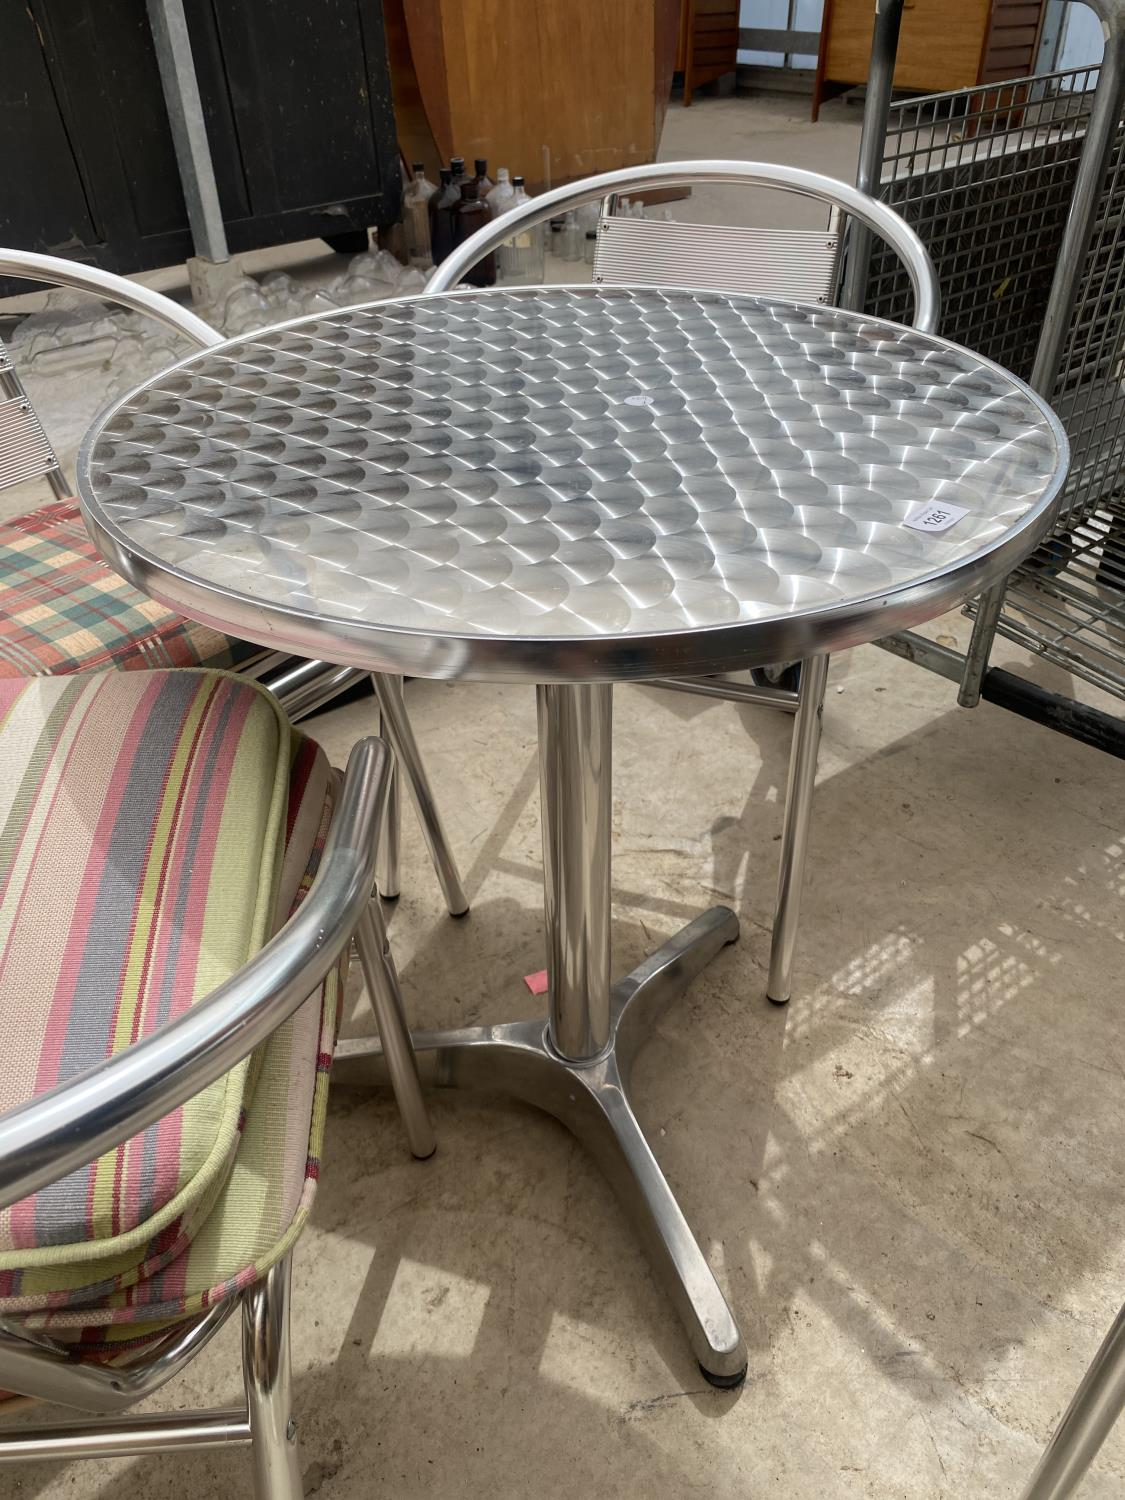 A STAINLESS STEEL BISTRO SET WITH ROUND TABLE AND FOUR CHAIRS - Image 5 of 5